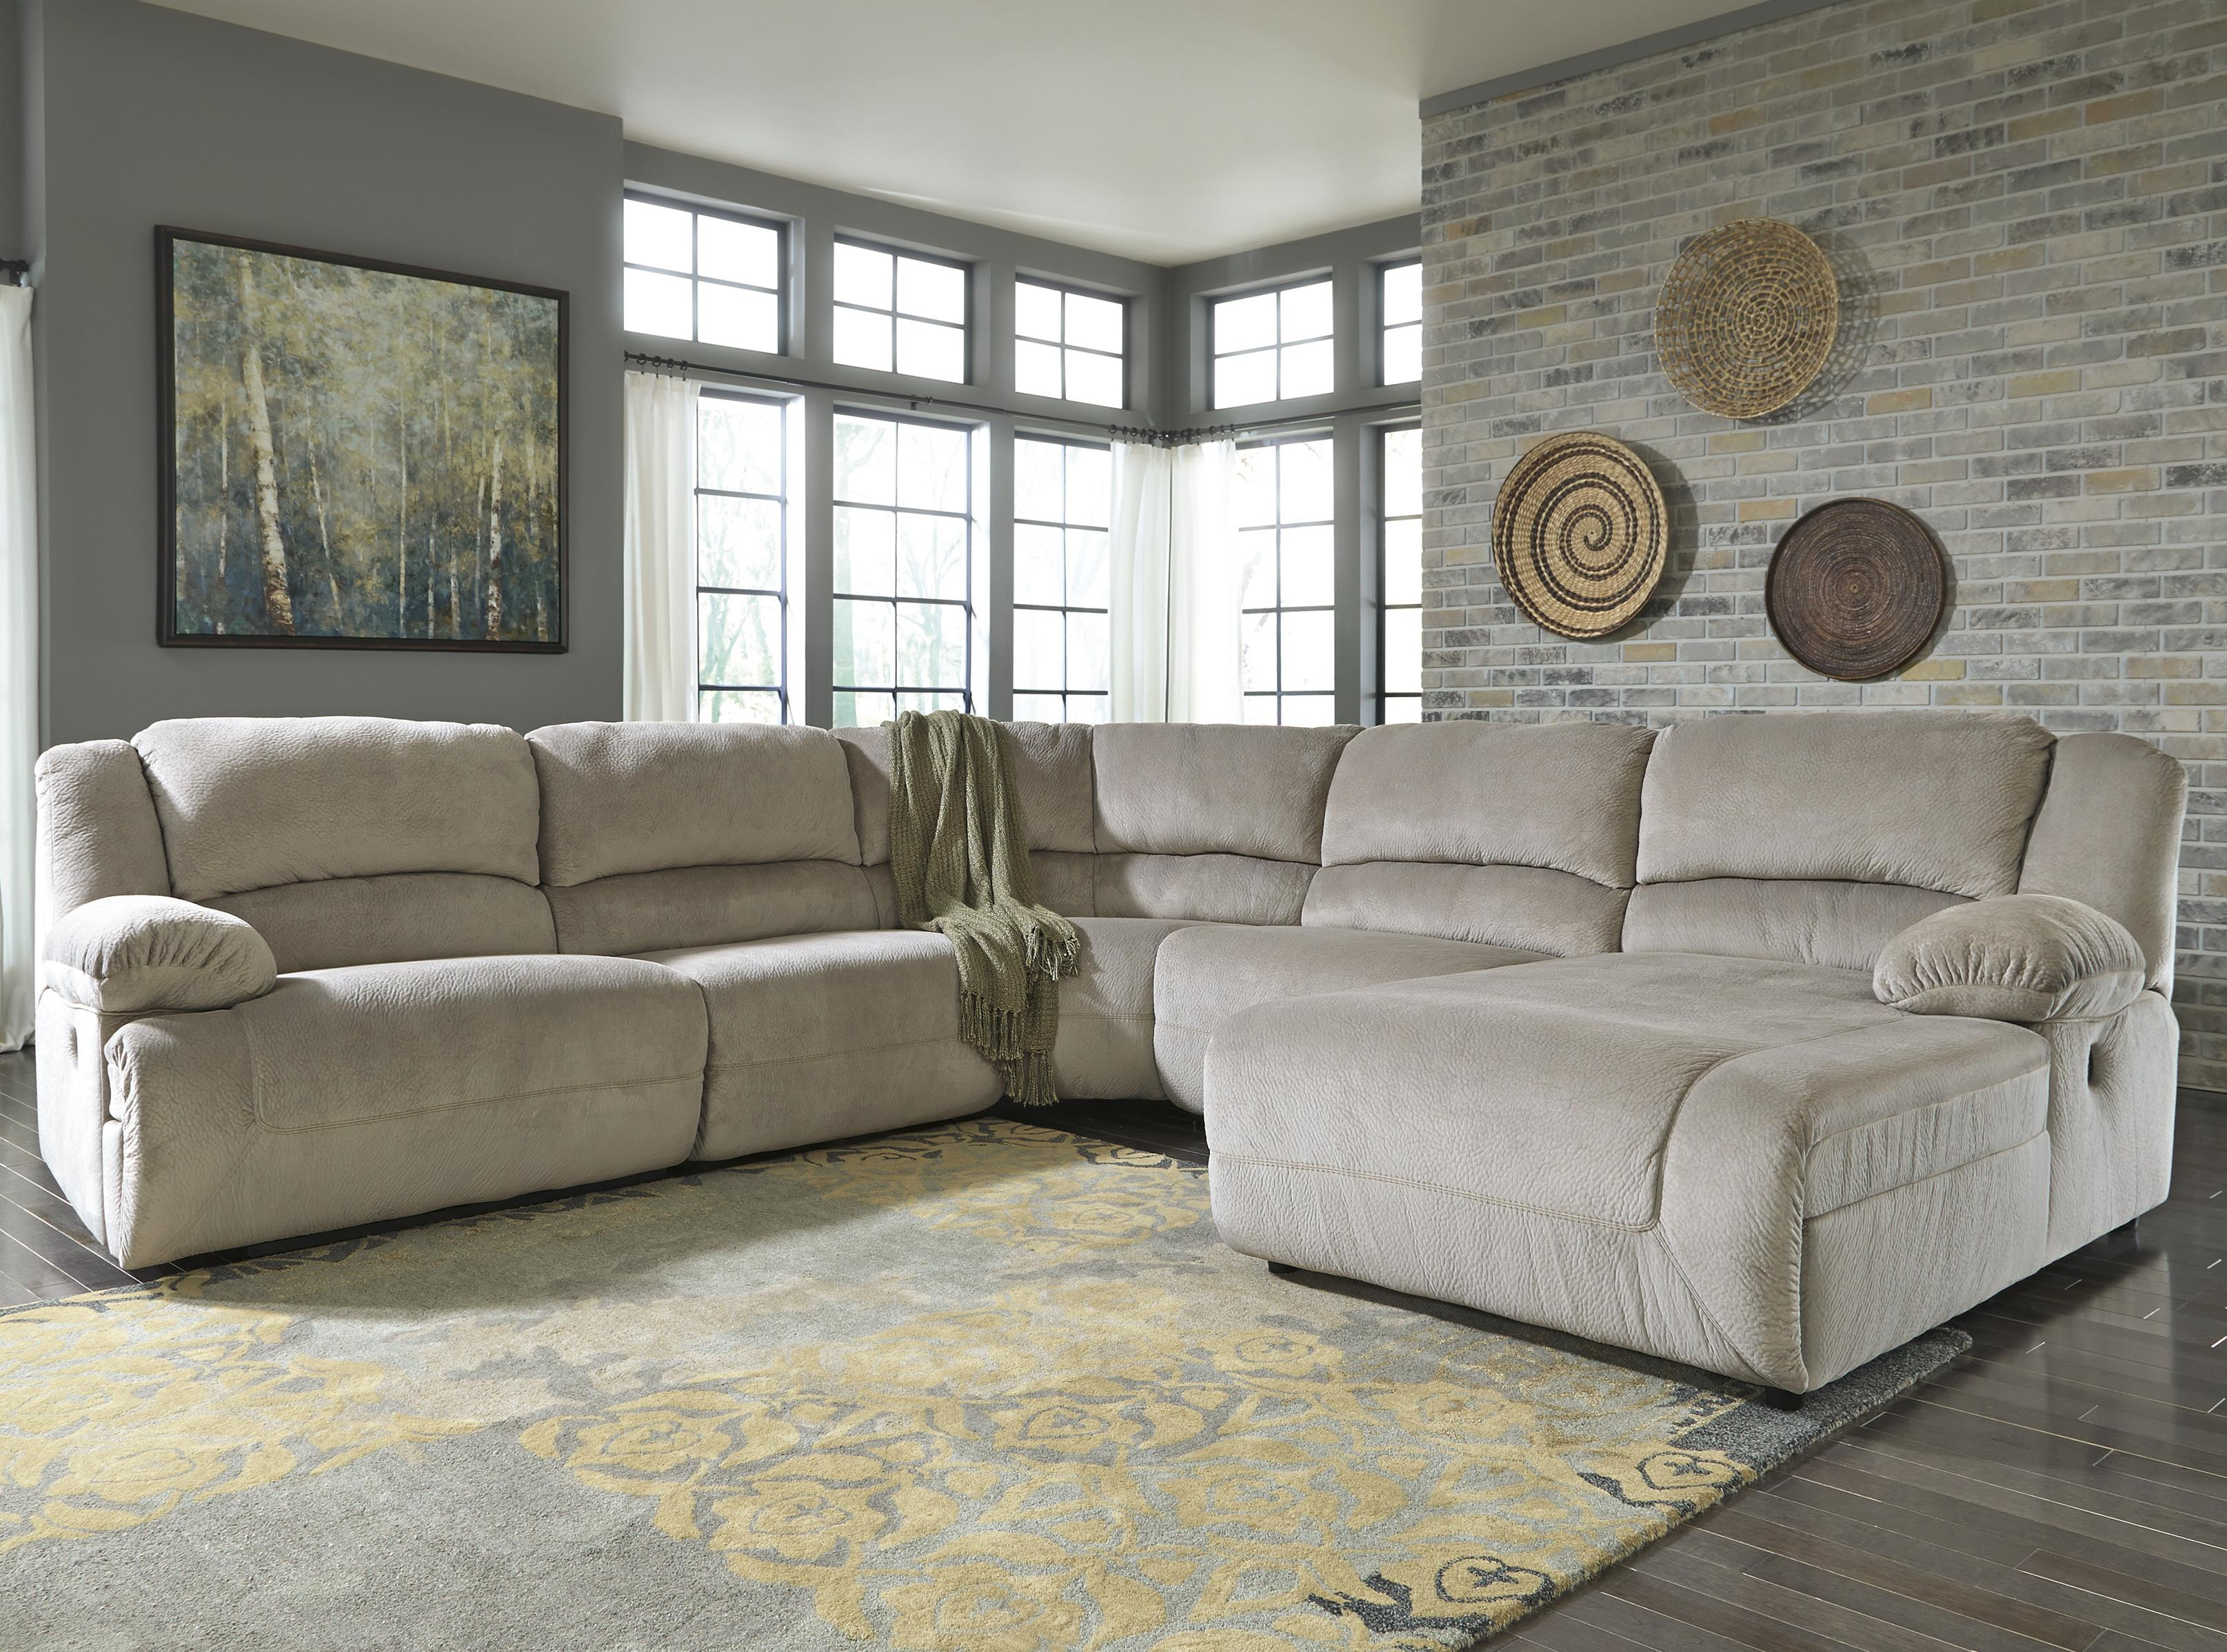 Signature Design by Ashley Toletta - Granite Reclining Sectional with Chaise  - Item Number: 5670340+2x46+77+07